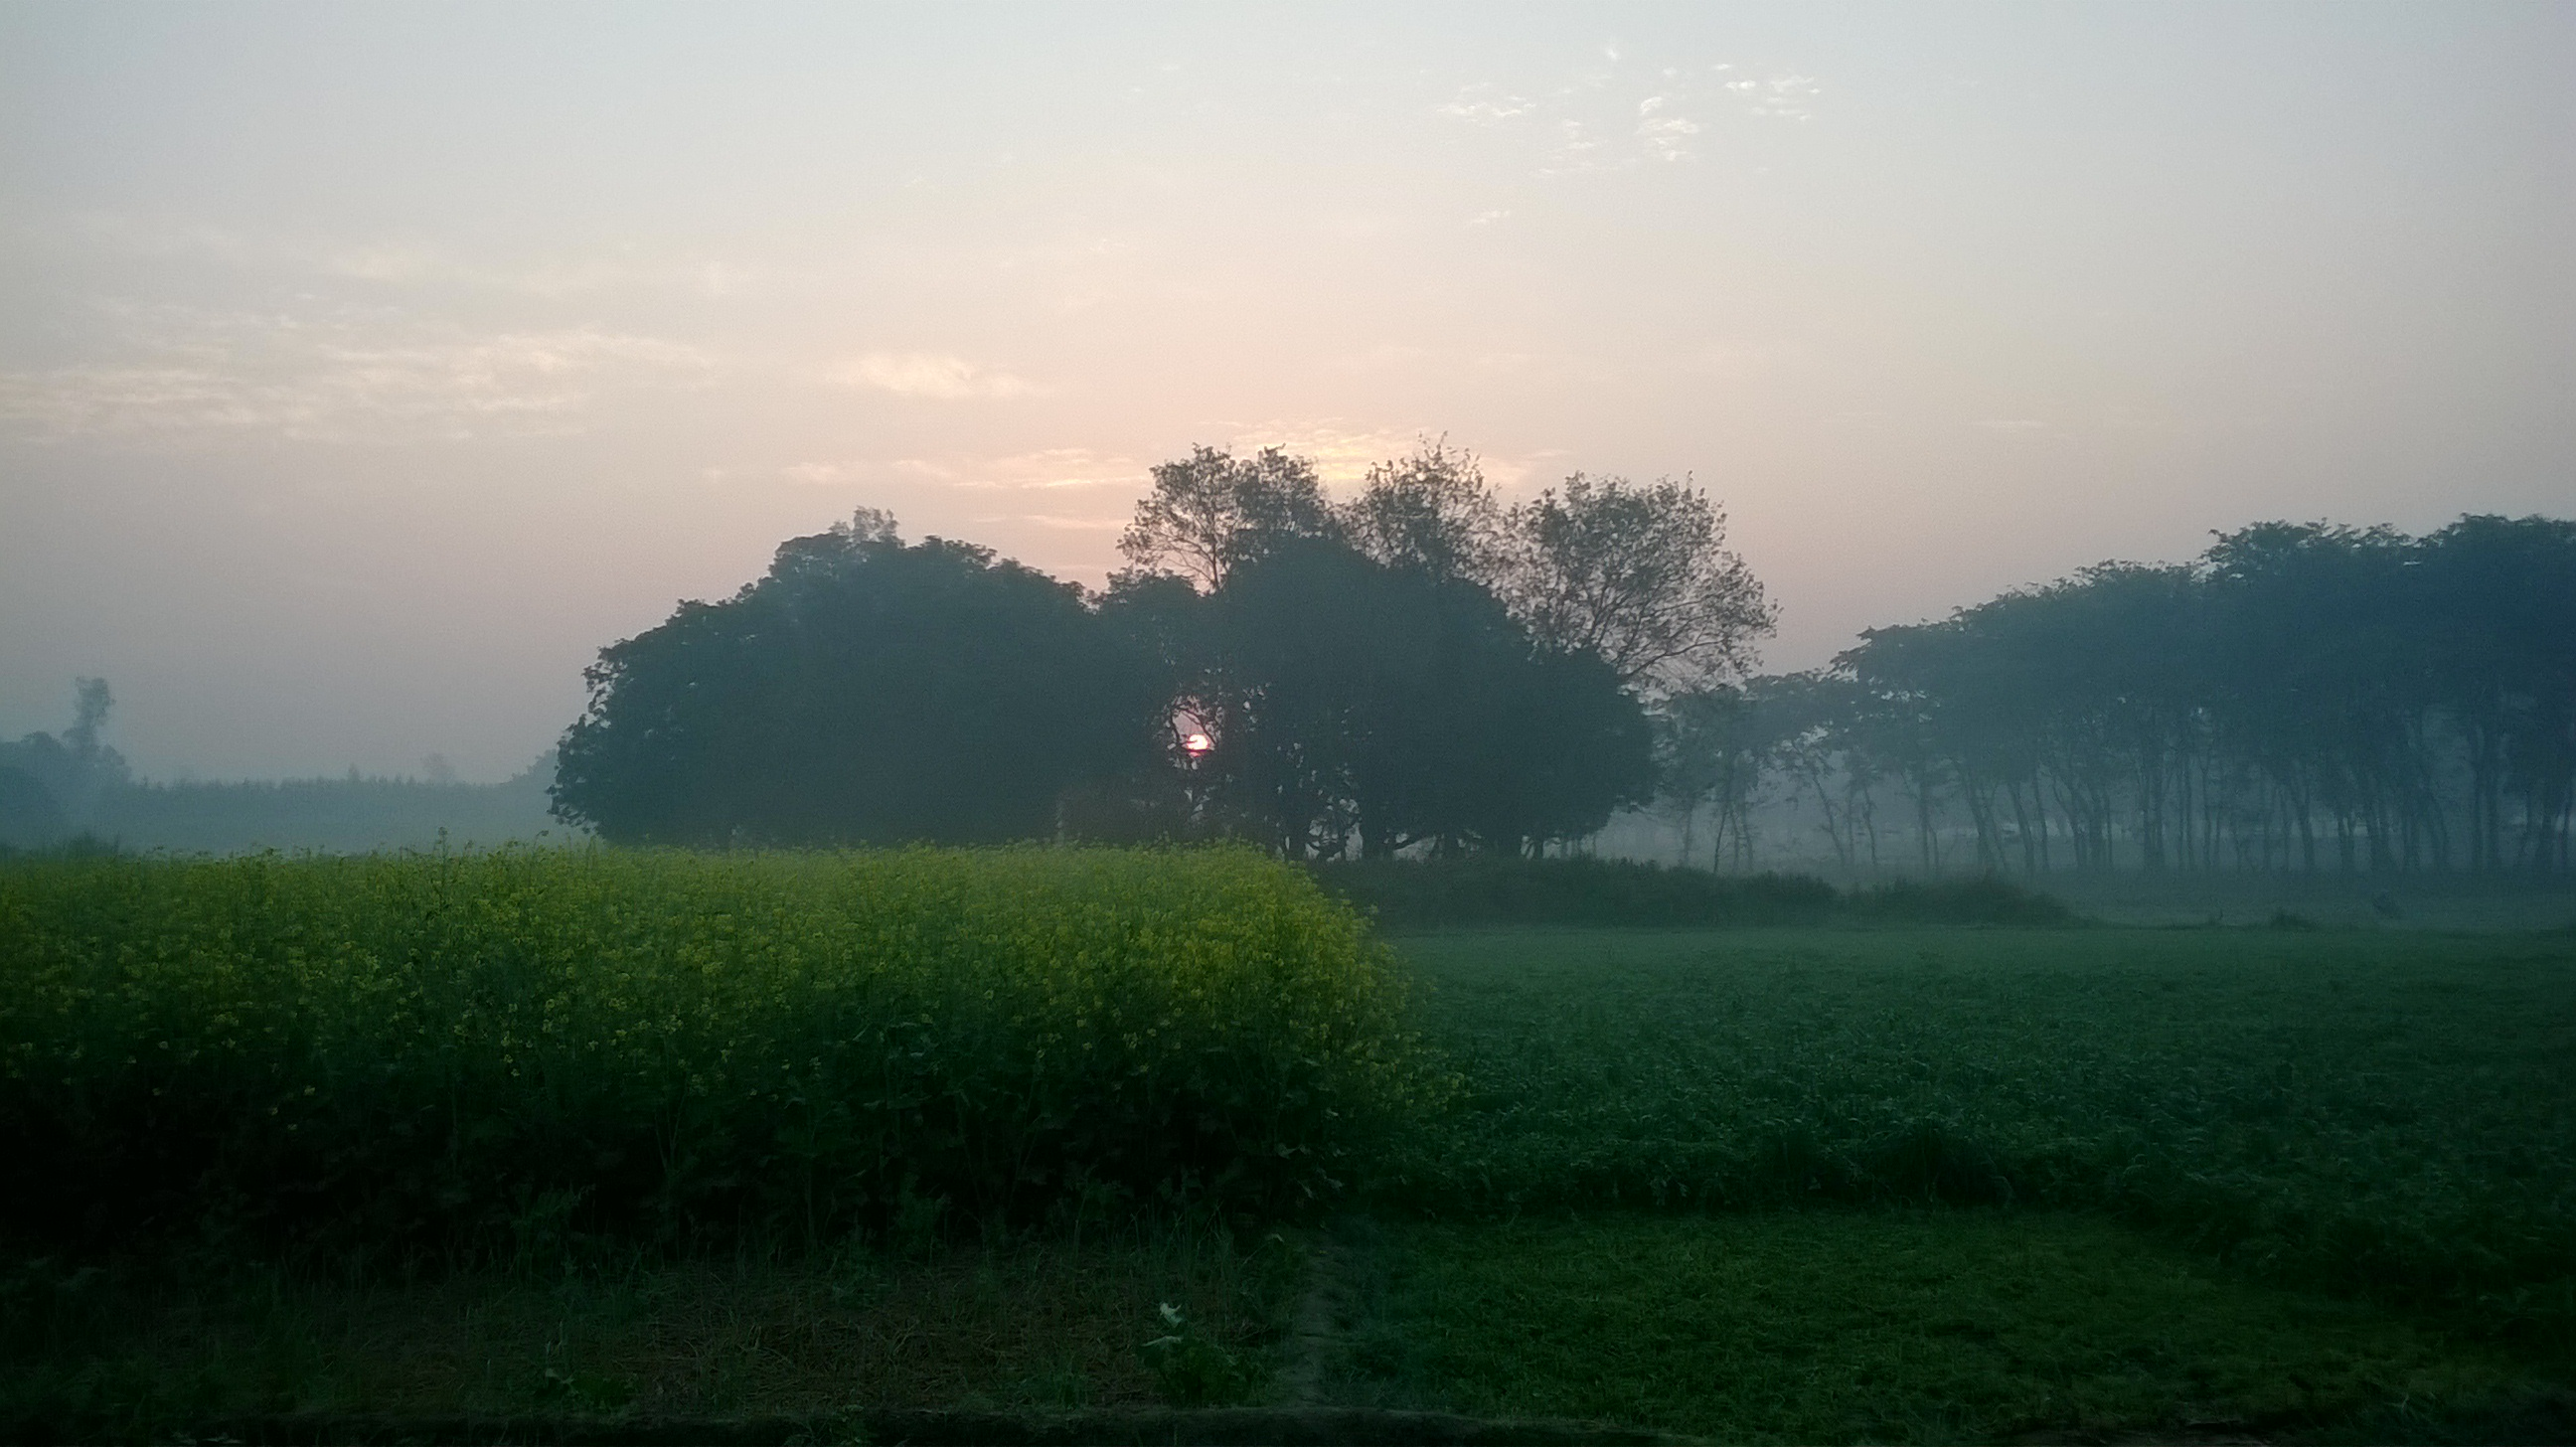 Early Morning @ Home